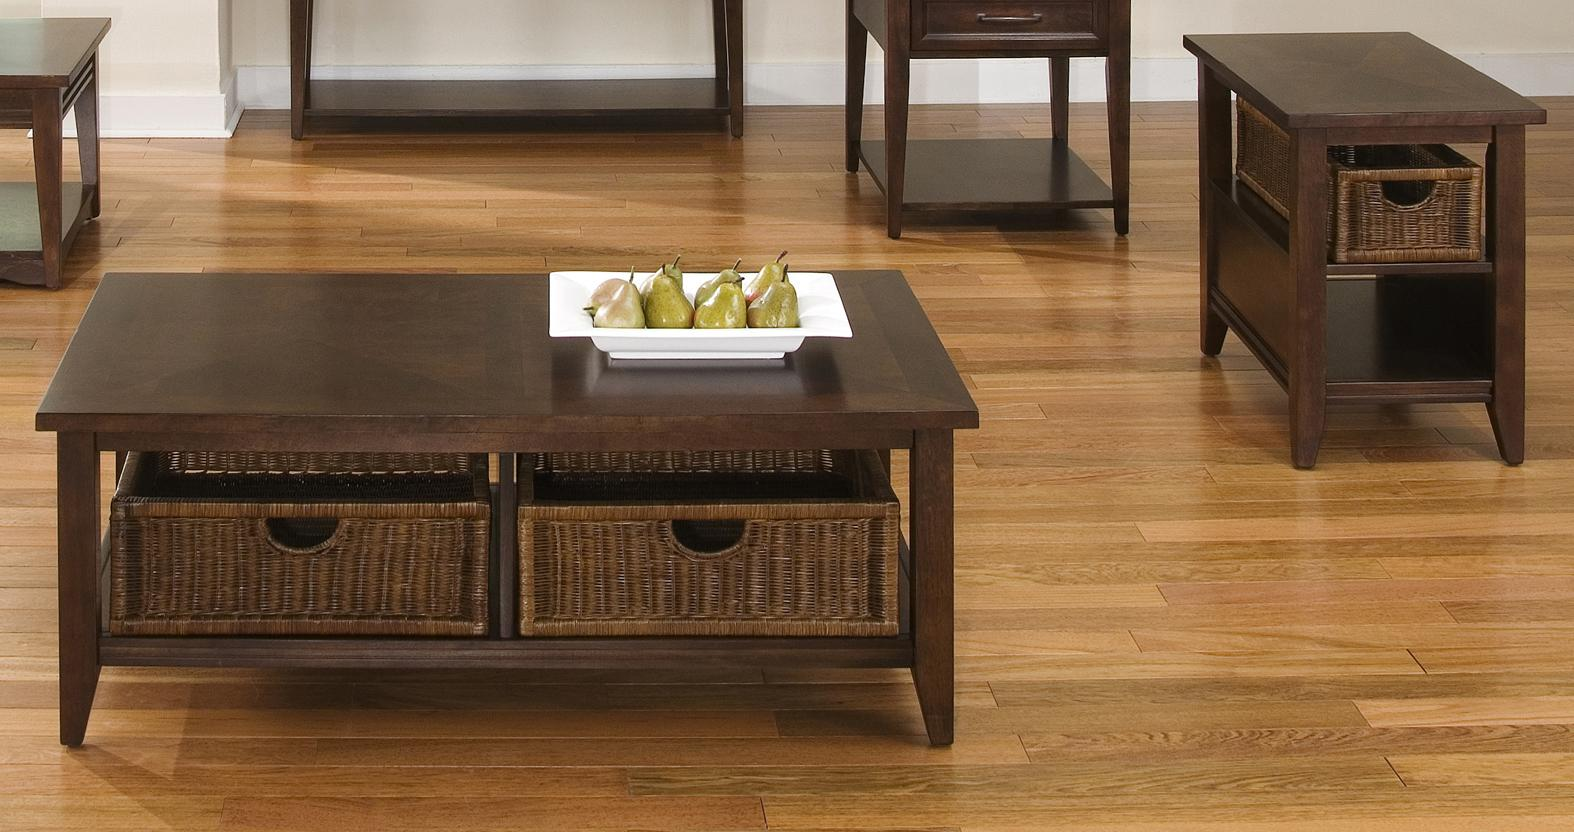 end-table-and-coffee-table-sets-The-usual-parson-end-table-usually-looks-with-covering-the-rectangular-table-top-and-four-legs (Image 7 of 9)